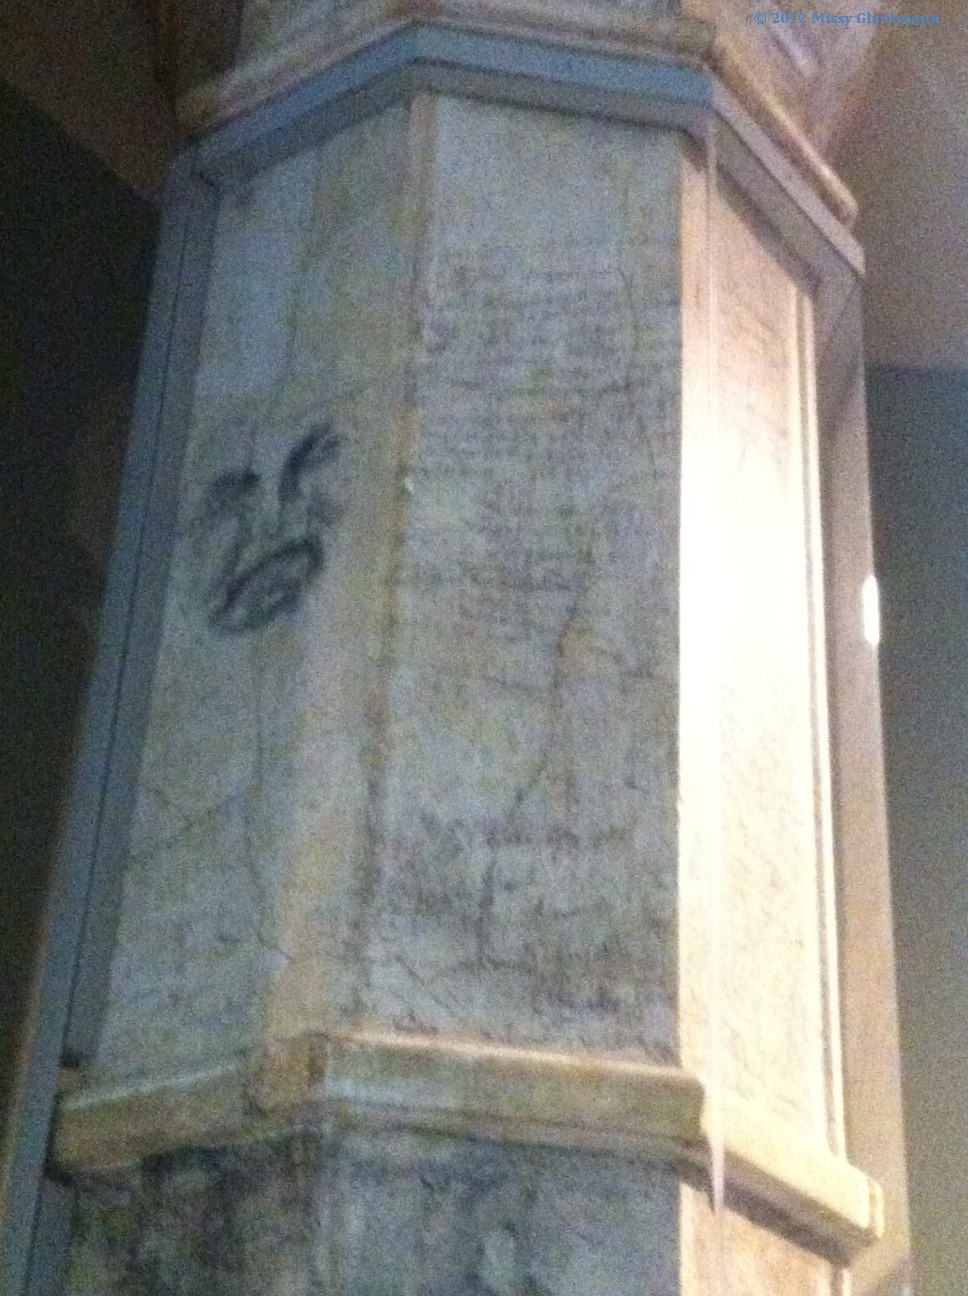 During the long wait in line at Ellis Island, new Americans drew grafitti on the pillars.  I am moved by the image of angst on the upper left of this image.